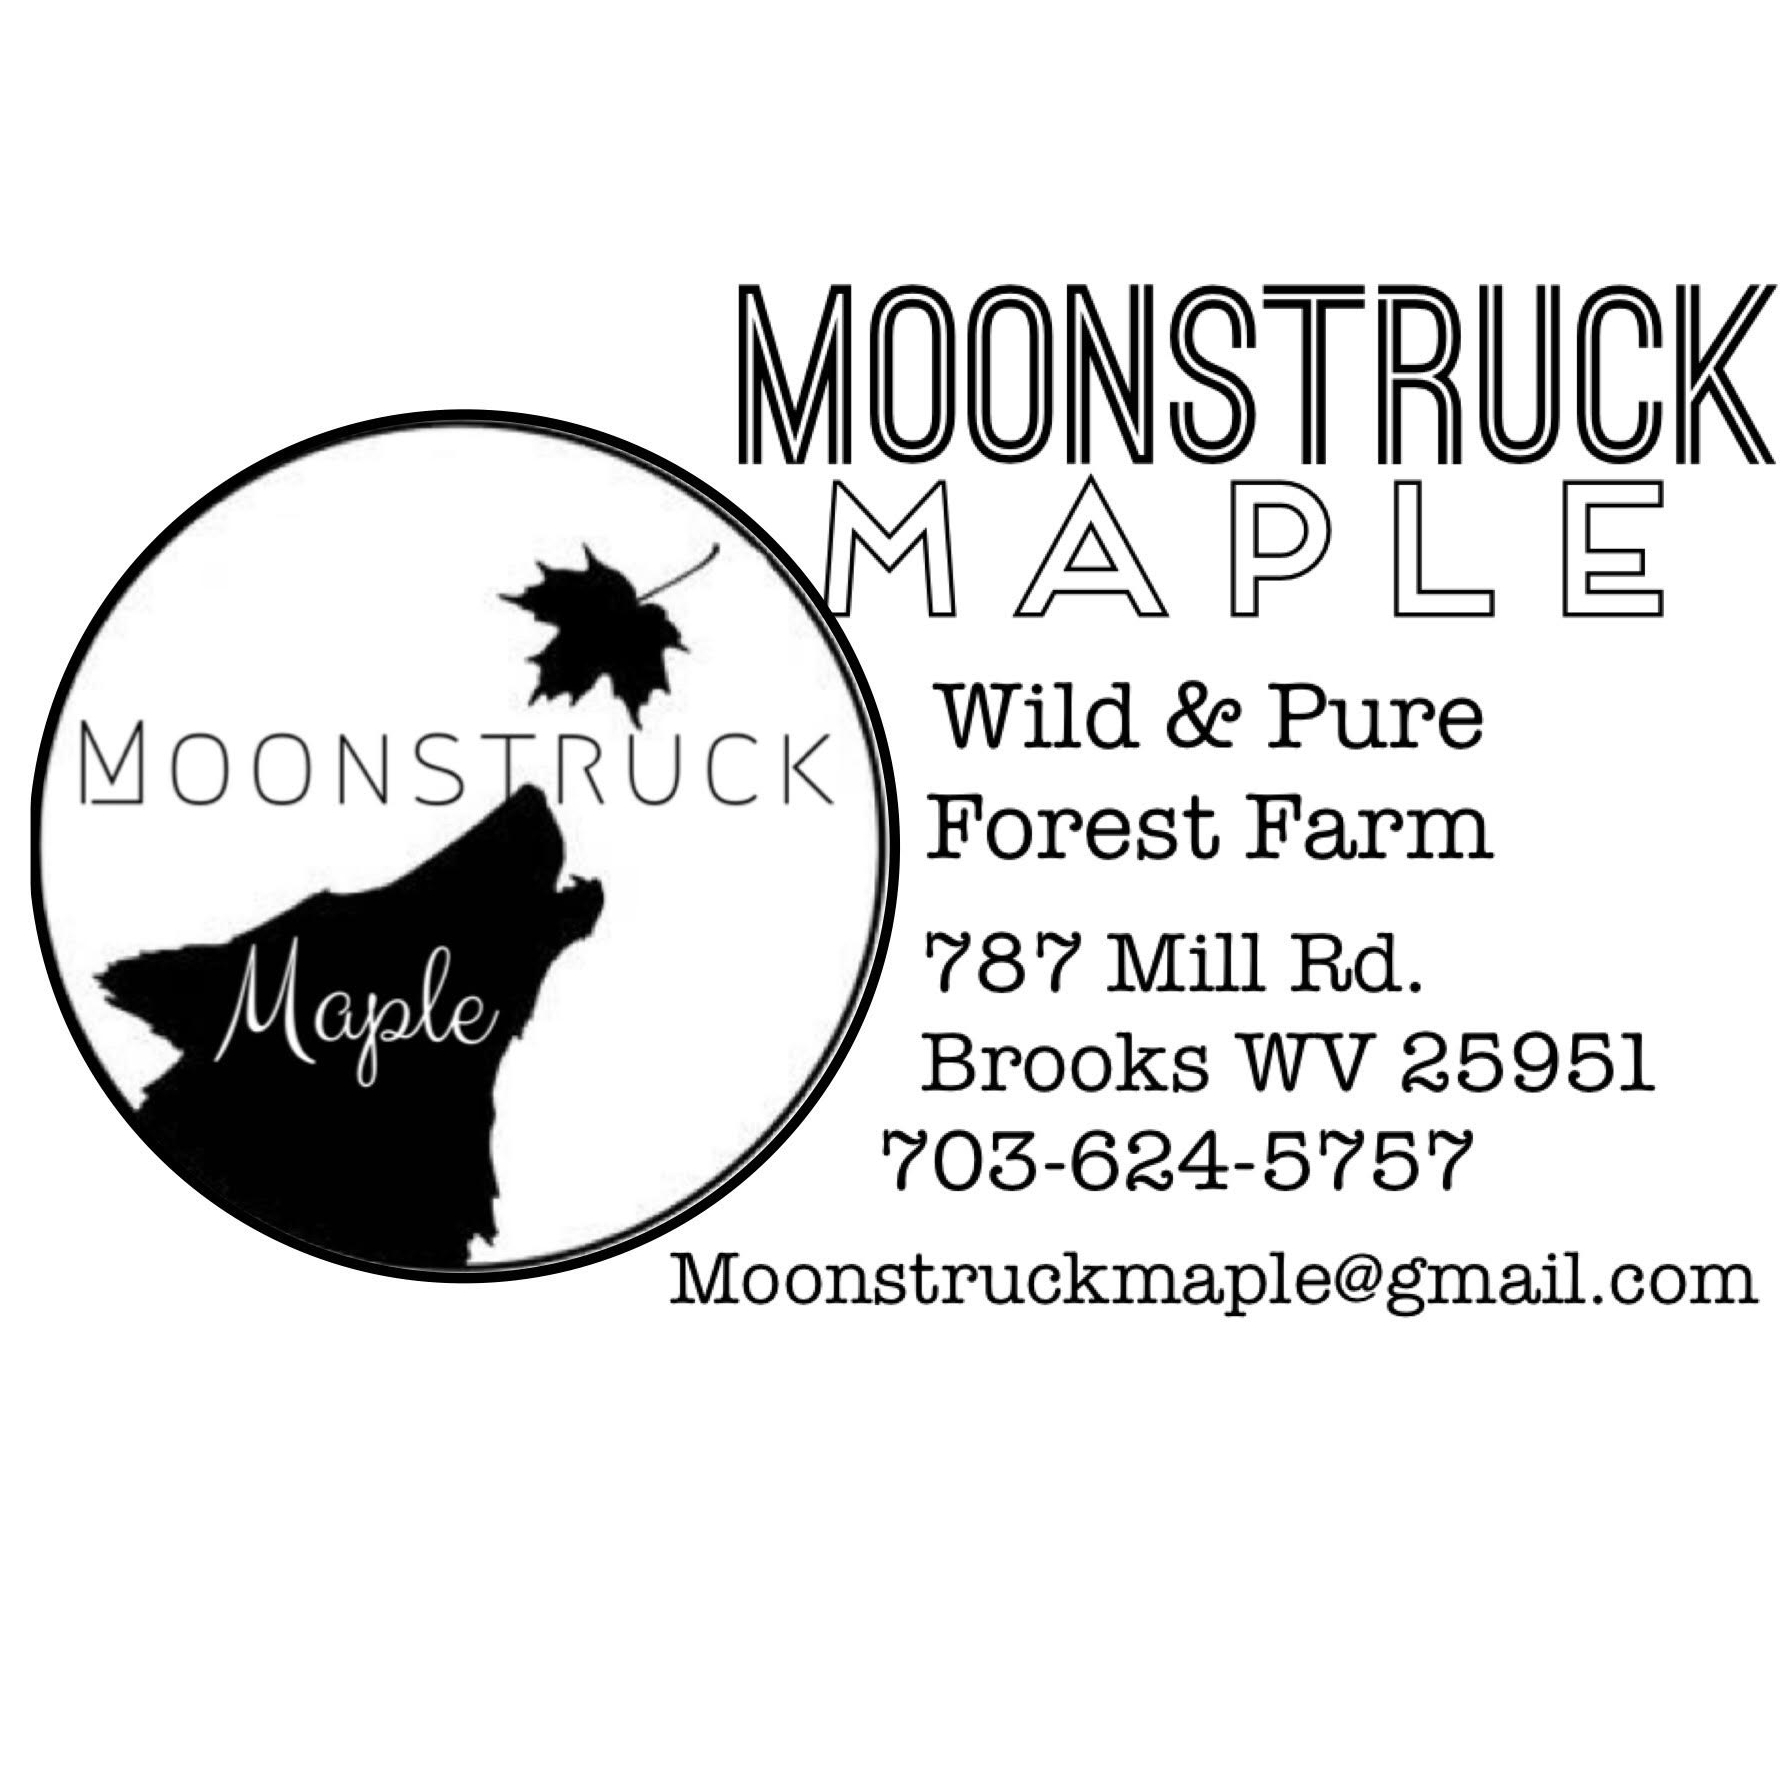 Moonstruck Maple